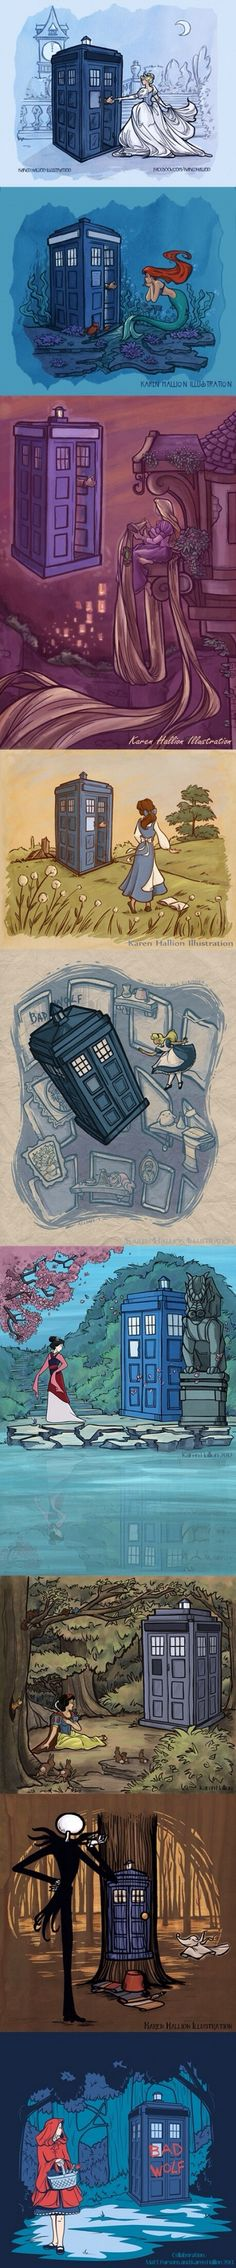 Disney fairy tales plus the Doctor